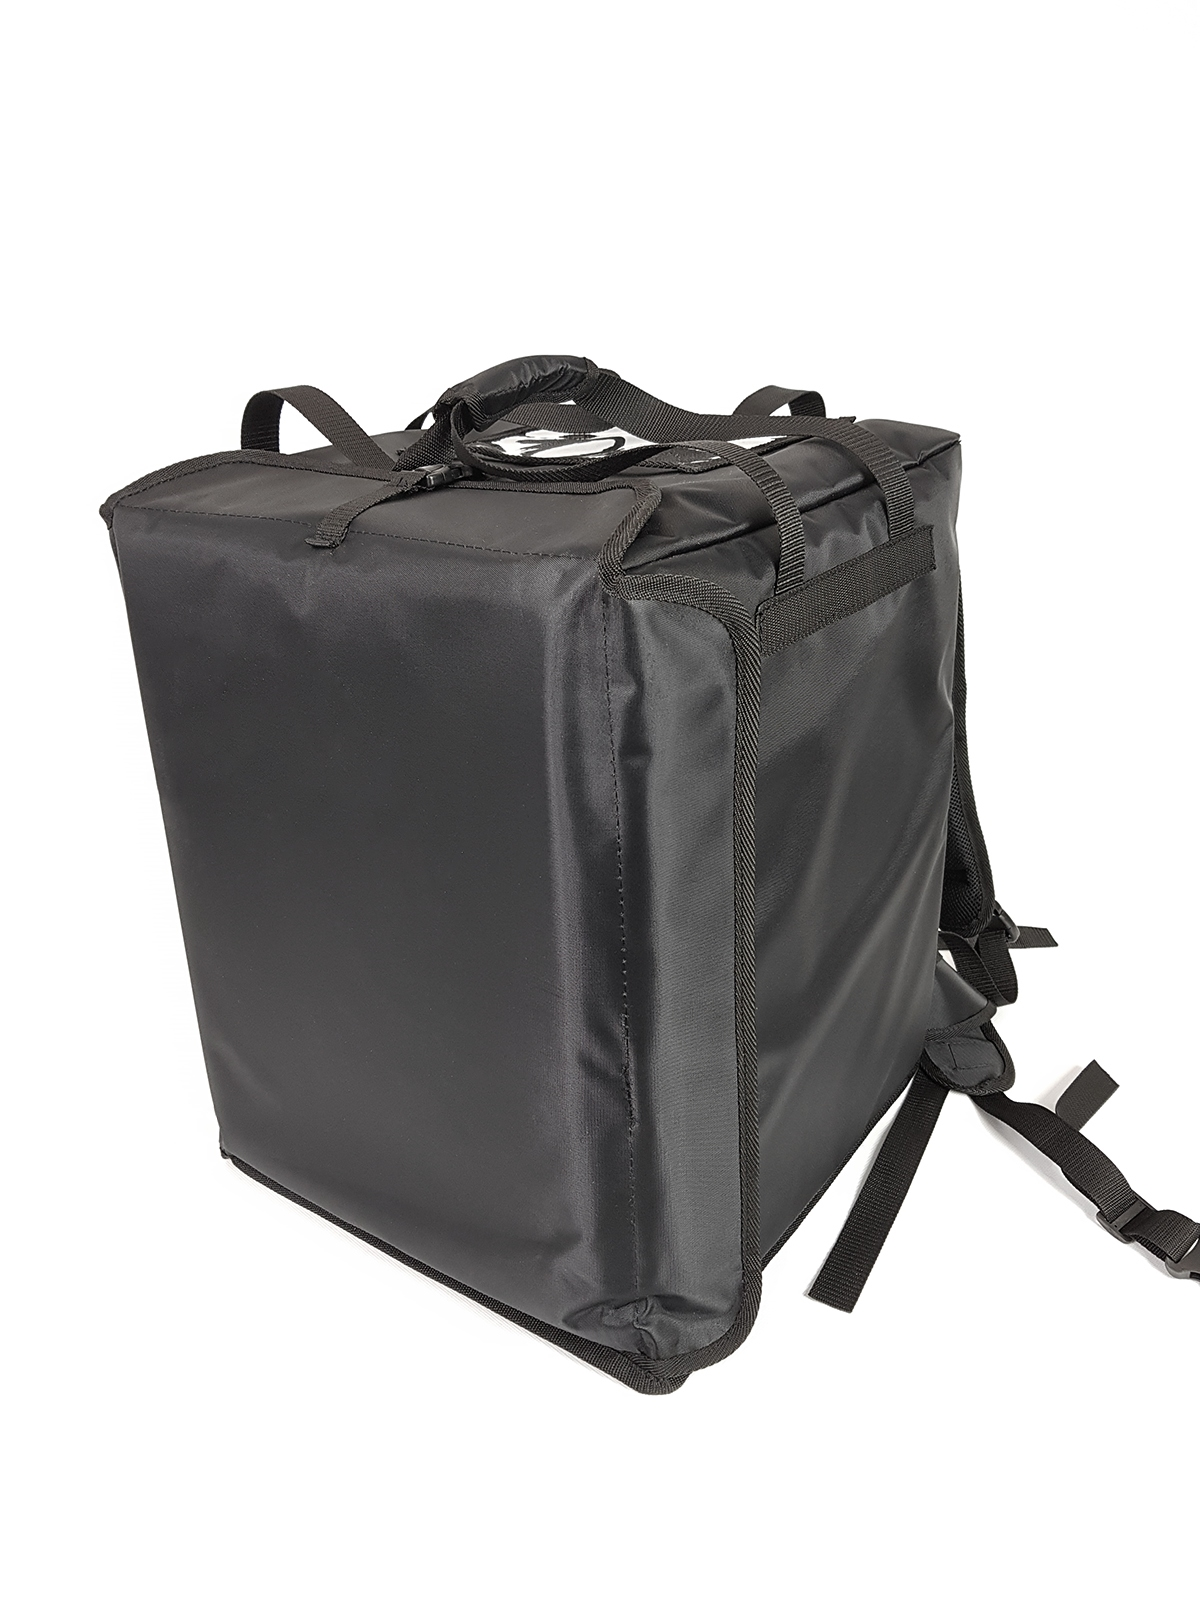 Backpack black solide, 35x35x45 (H) inside dimensions